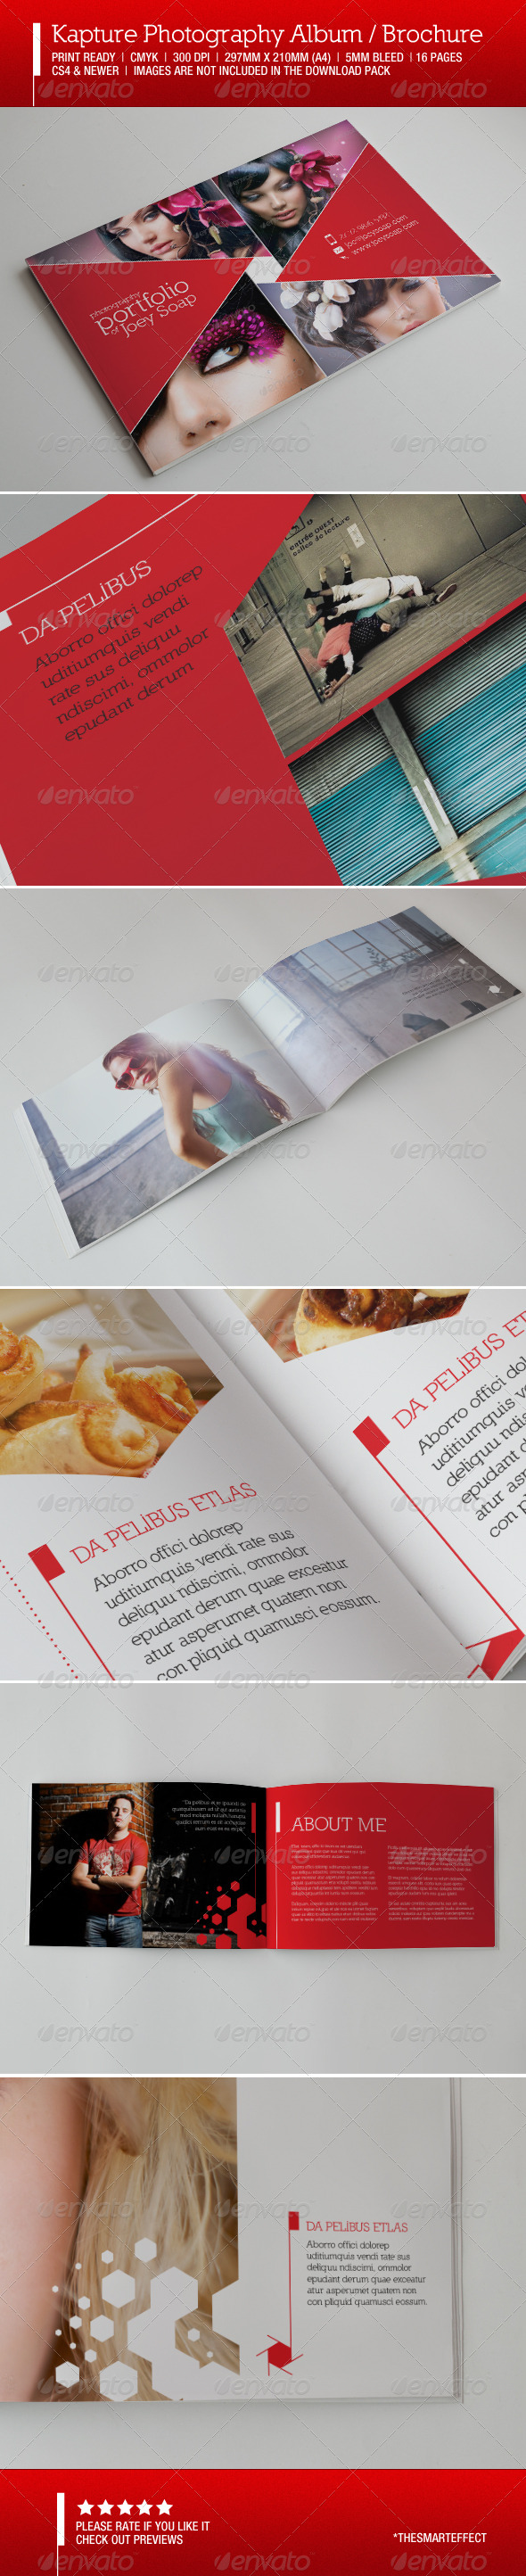 Kapture Photography Album / Brochure - Photo Albums Print Templates